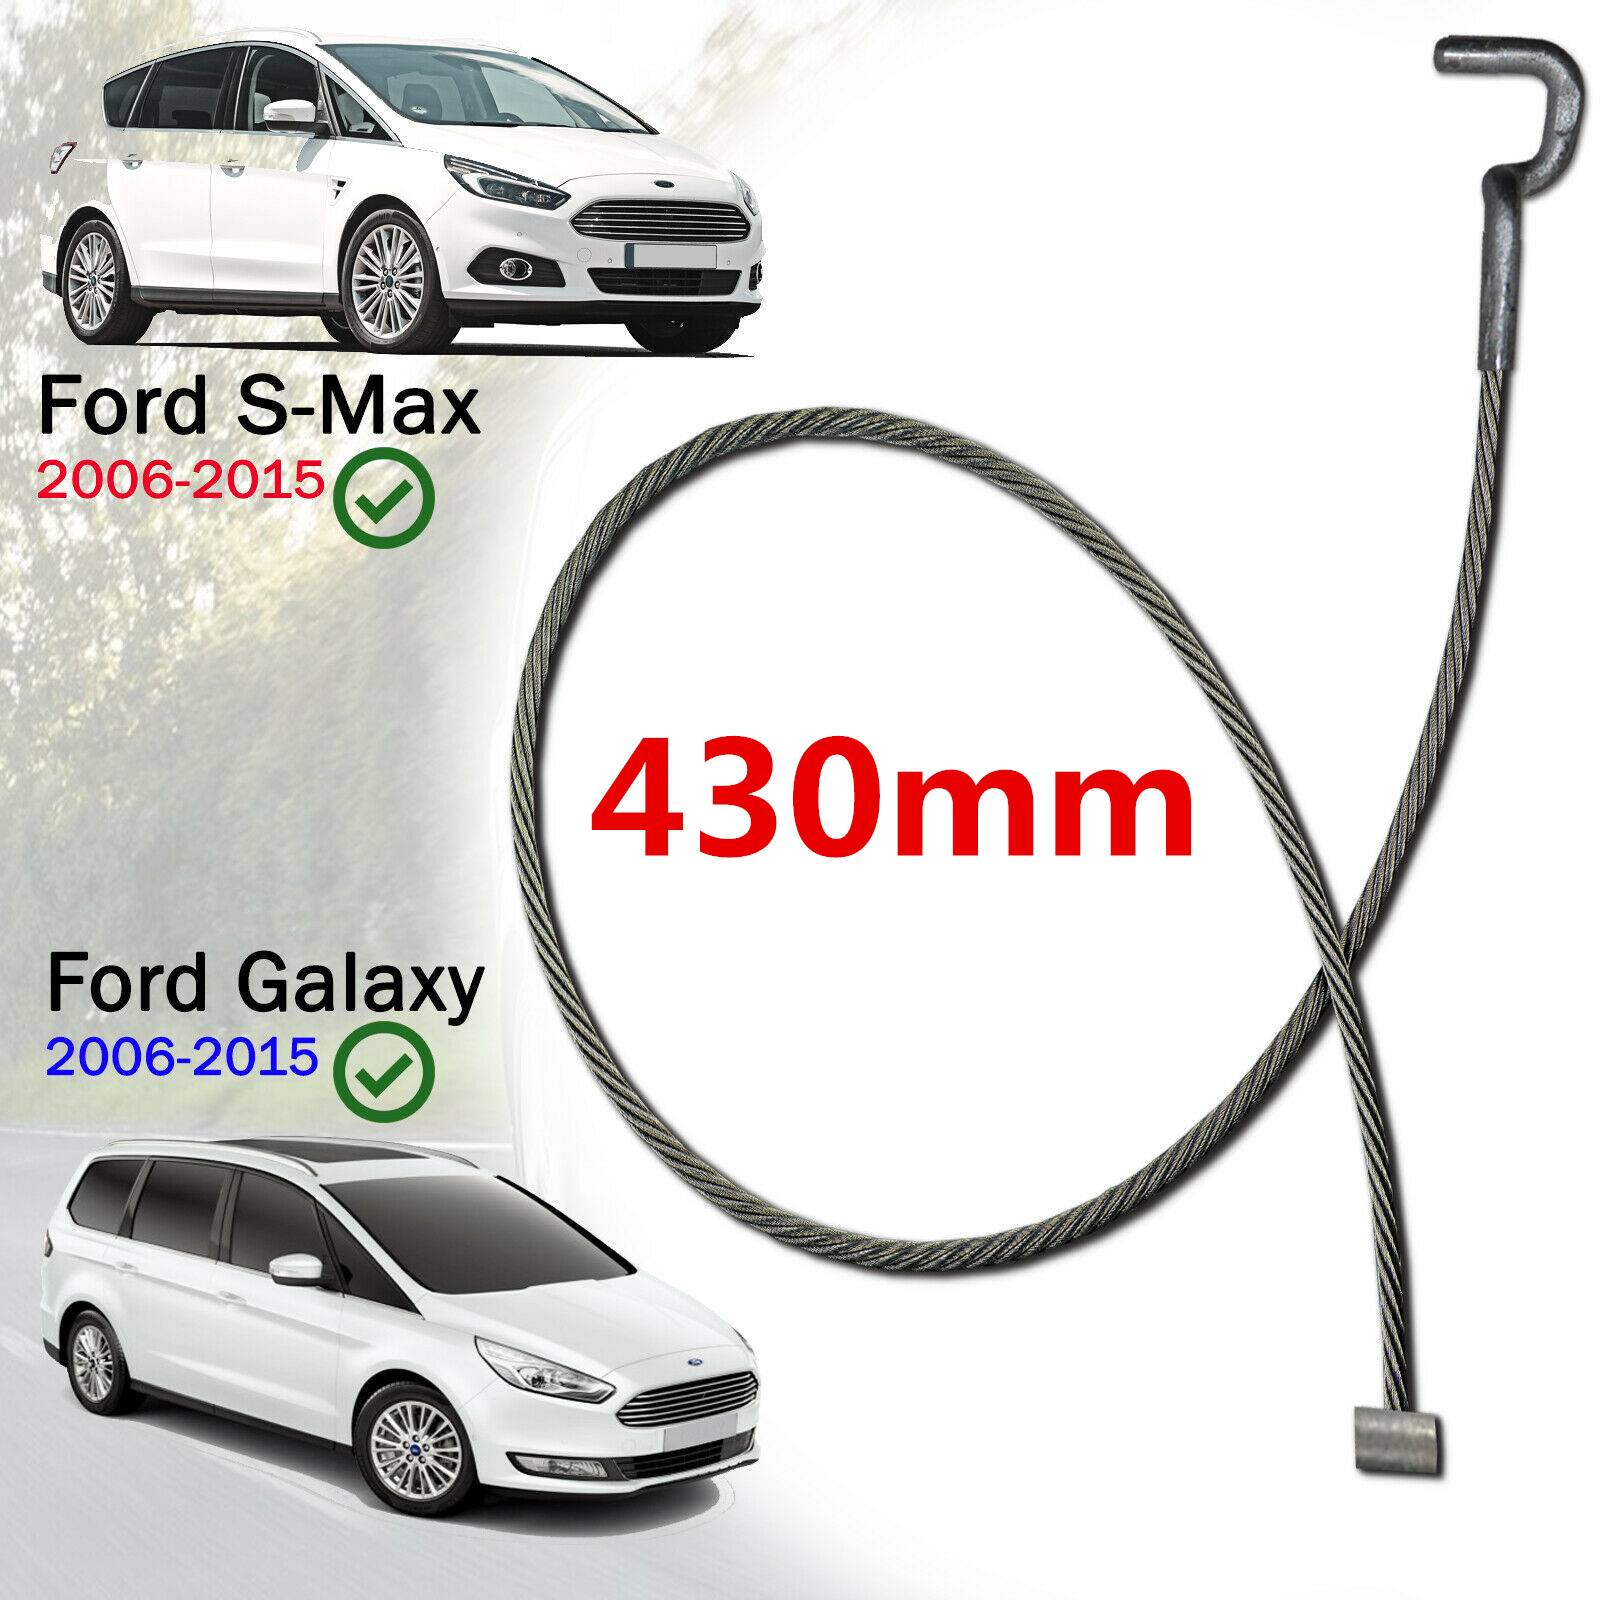 Electronic Handbrake Cables Kit For Ford Focus C-Max 2003-2008 2pcs